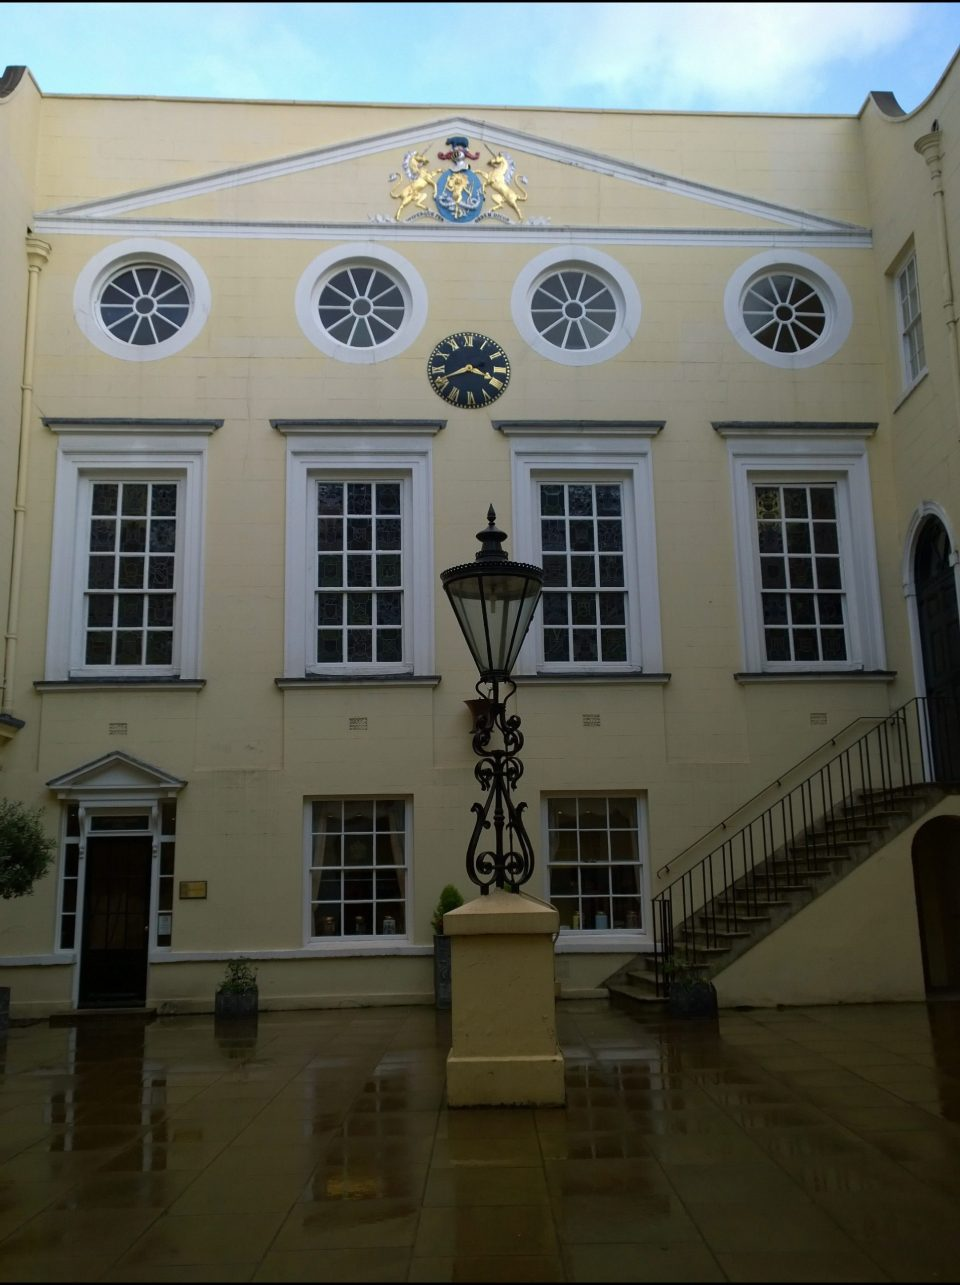 The Apothecaries Hall on the site of the former monastery